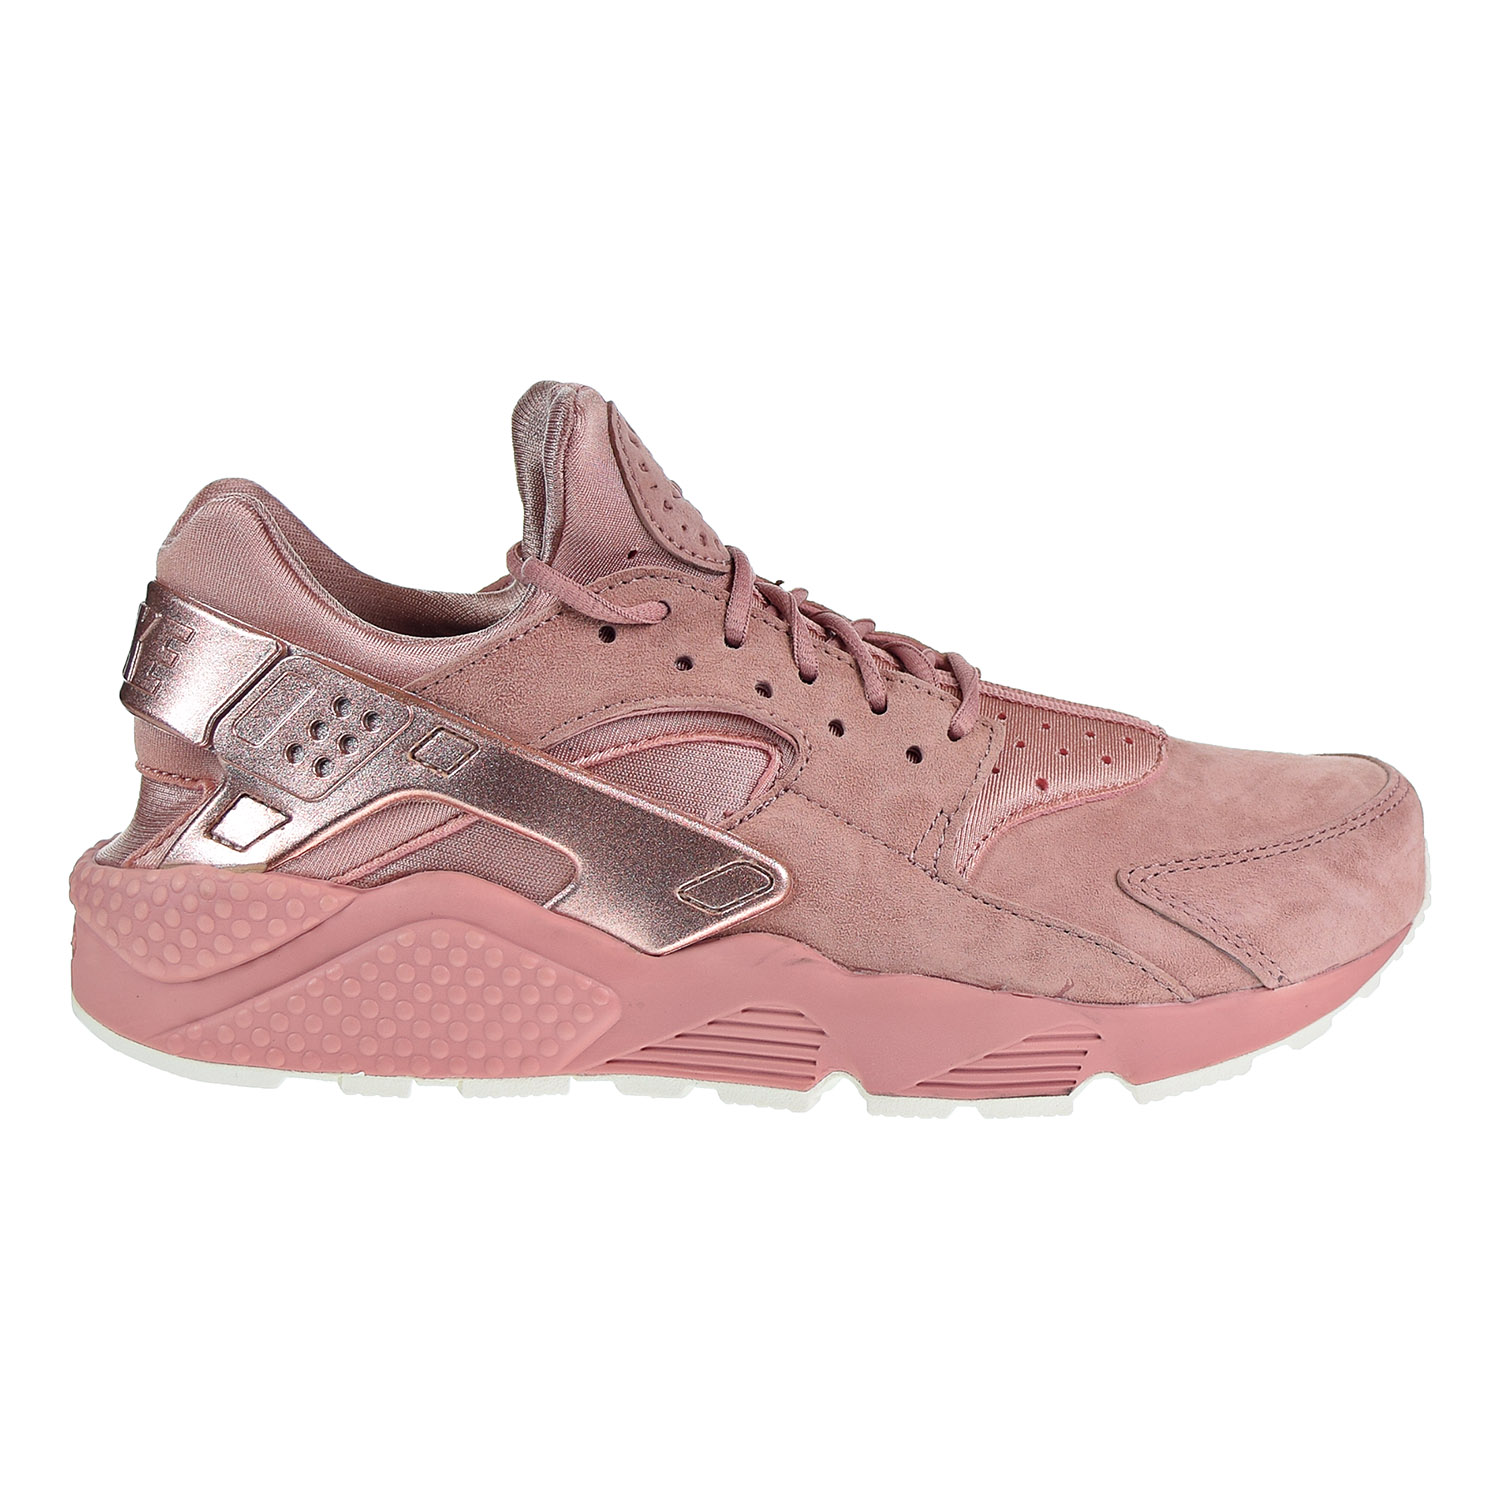 the best attitude 35abe 90983 ... denmark nike nike air huarache run premium mens running shoes rust pink  mtlc red bronze sail